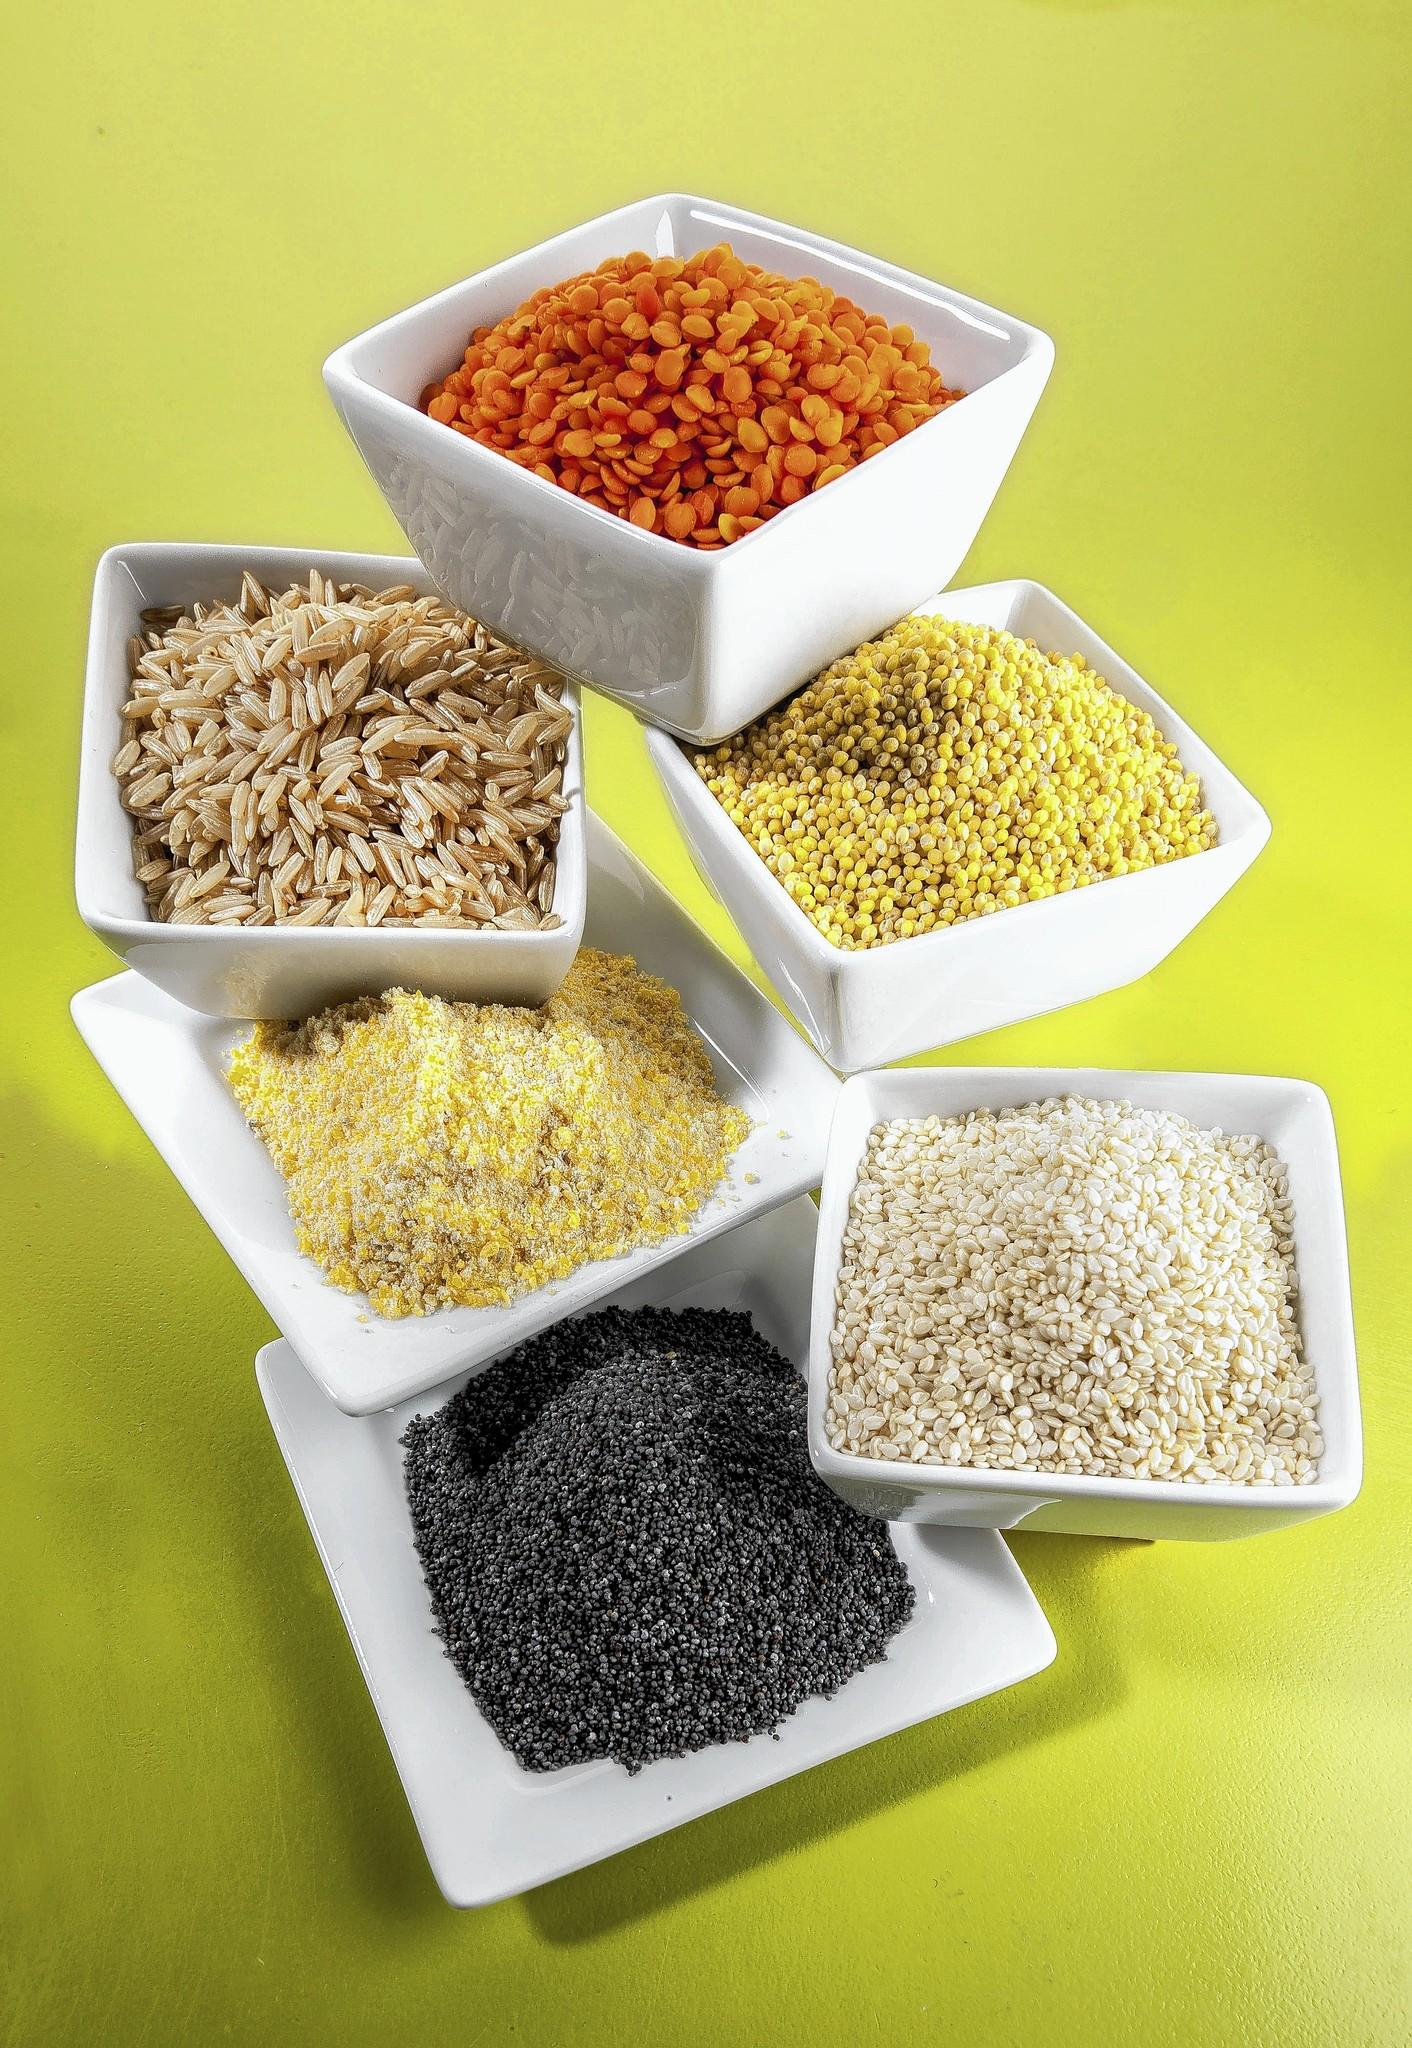 Various grains that must be avoided by Ashkenazic Jews during Passover.